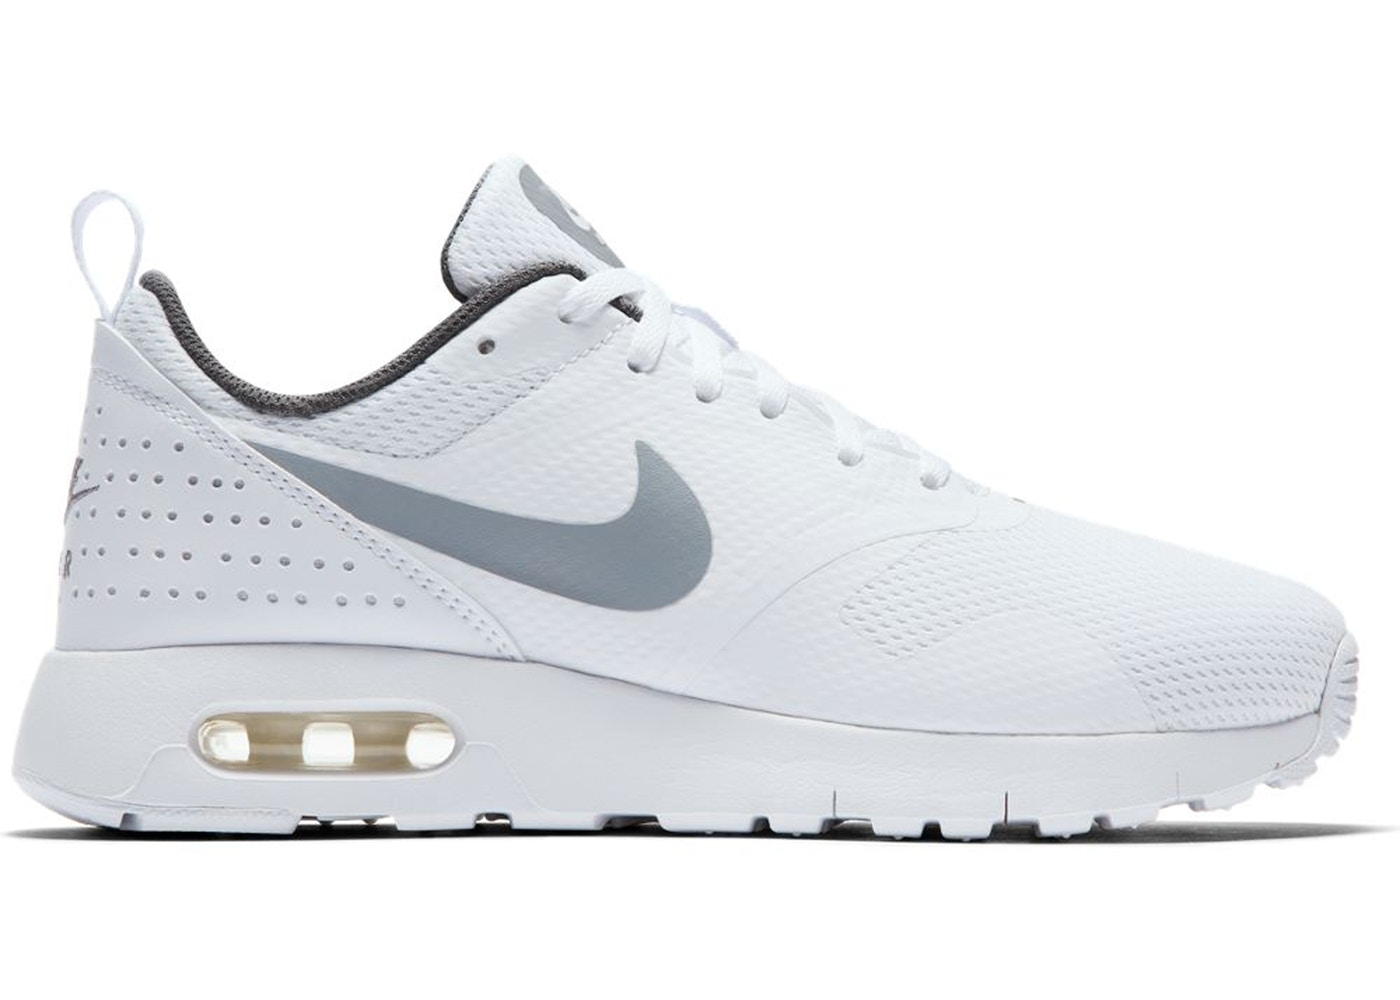 best website c37e1 1e790 Air Max Tavas White Cool Grey (GS) - 814443-101